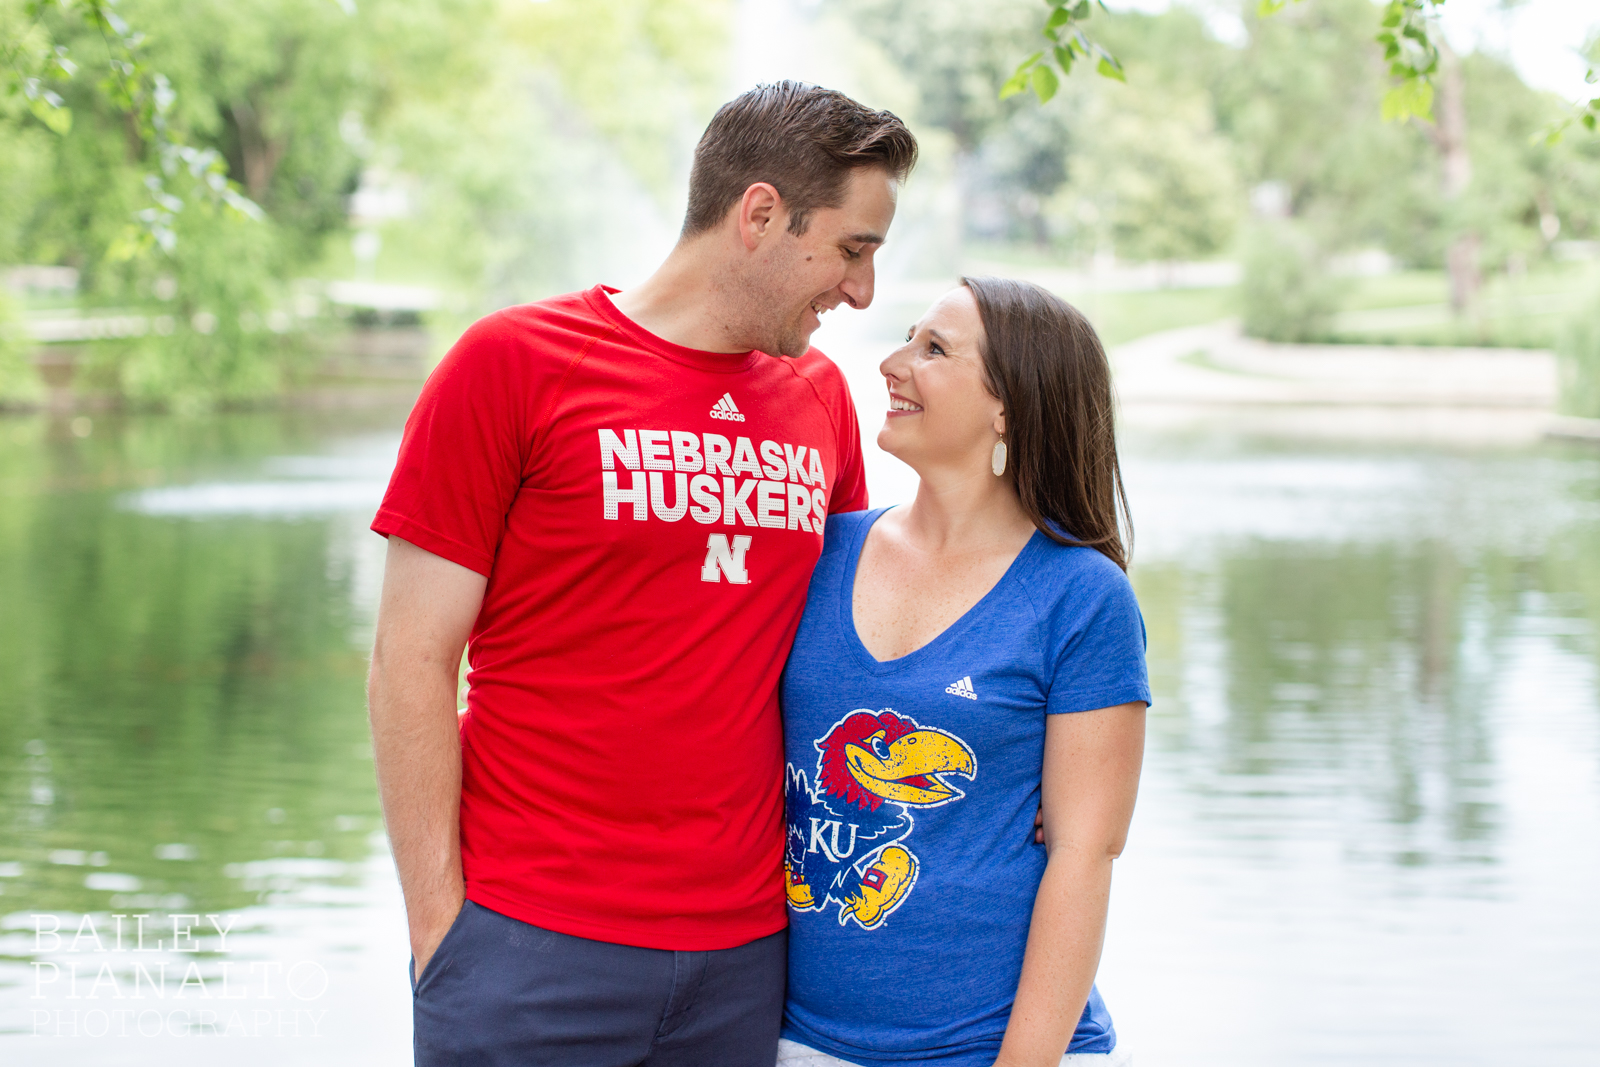 Nebraska Husker and Kansas Jayhawk T-Shirts in Colorful Sunset and Skyline Engagement Session Inspiration Loose Park | Kansas City, MO